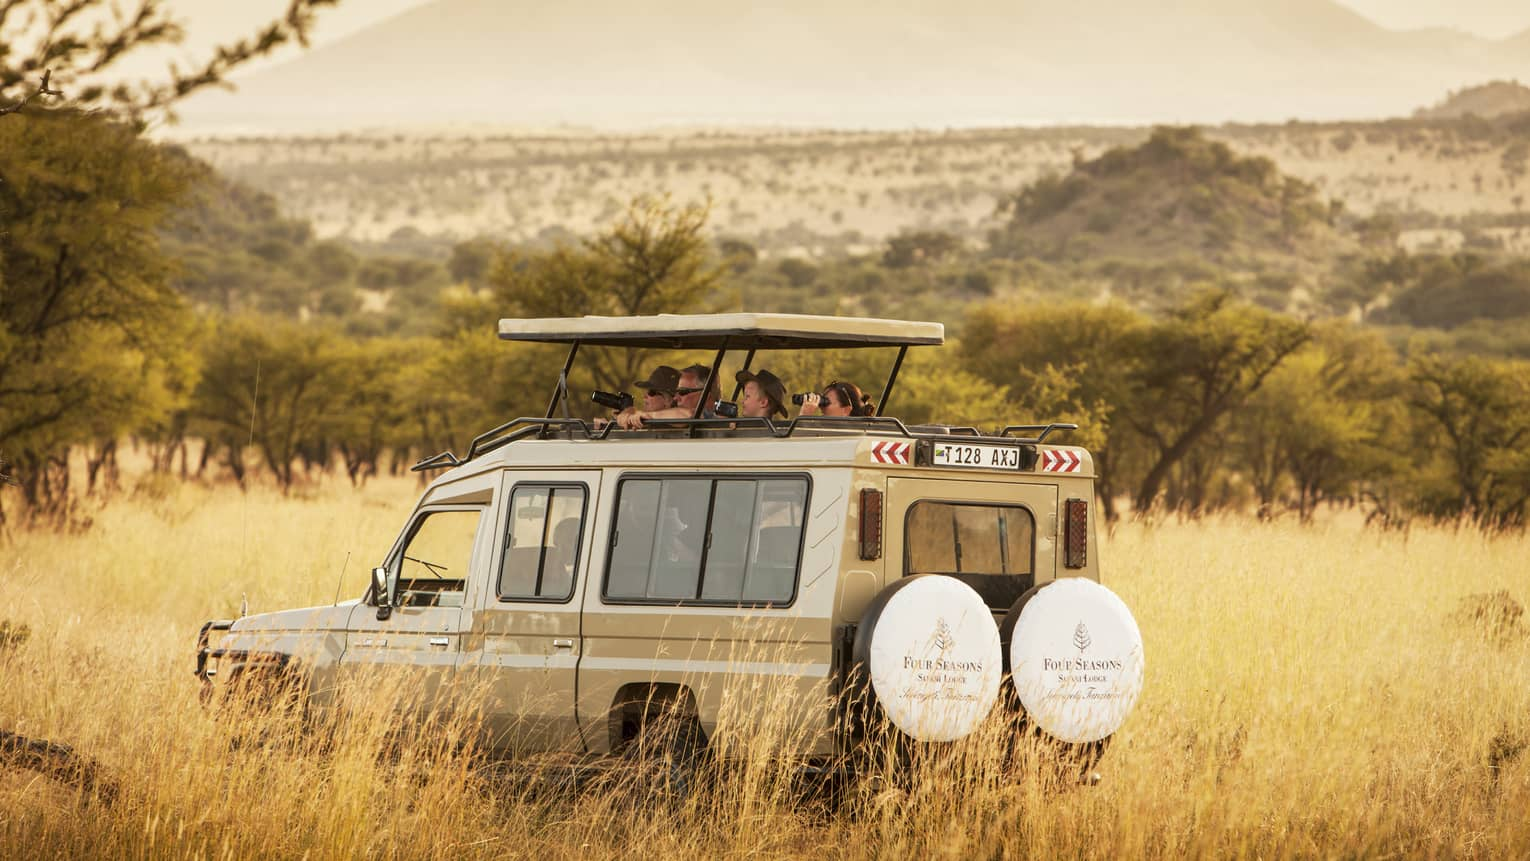 Guests peek out from white safari jeep roof in tall grass of Serengeti park